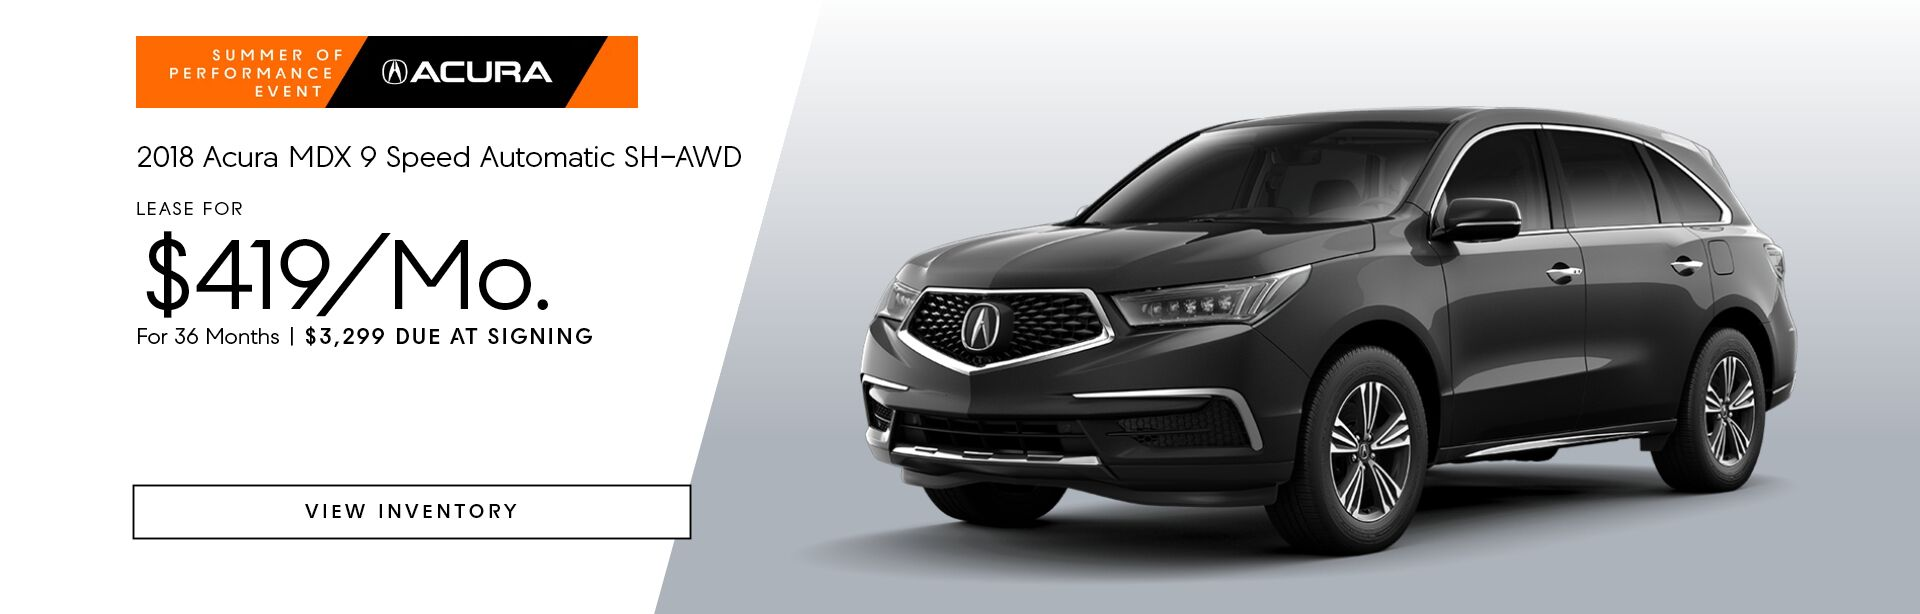 2018 MDX 9 Speed Automatic SH-AWD